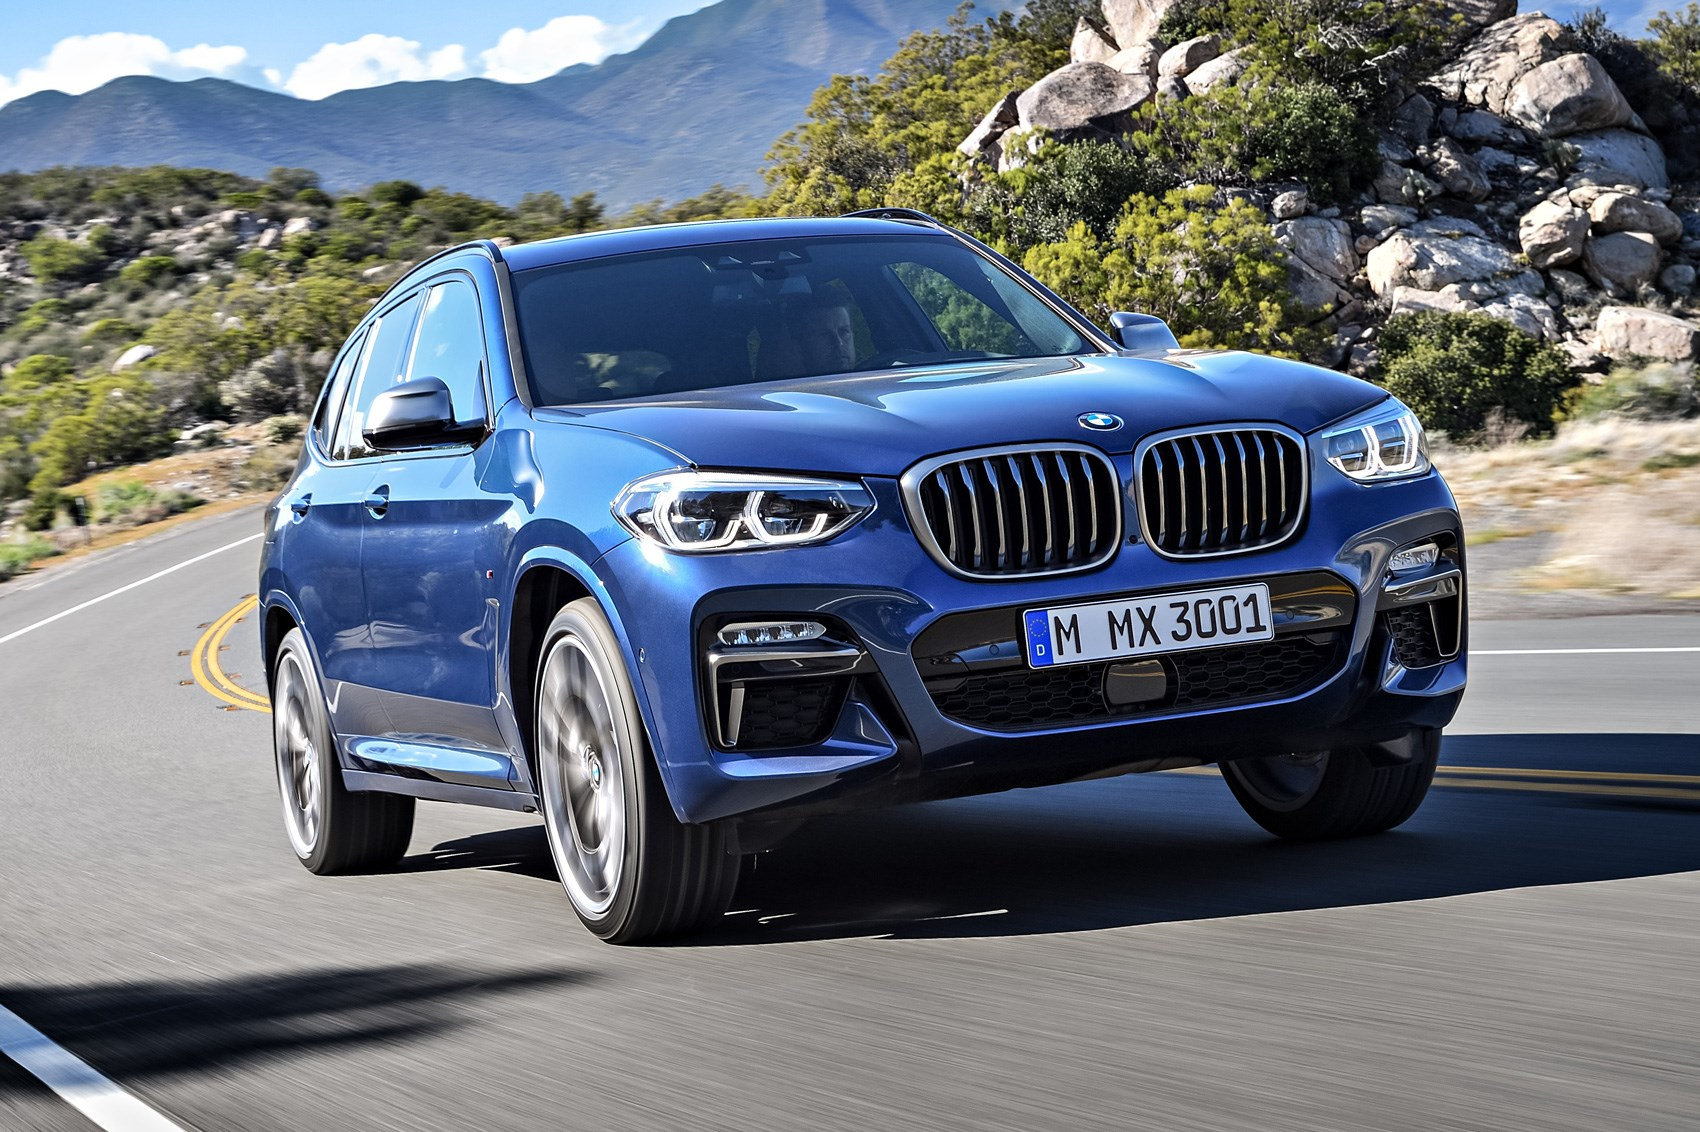 Bmw X3 Suv 2017 Review Car Magazine